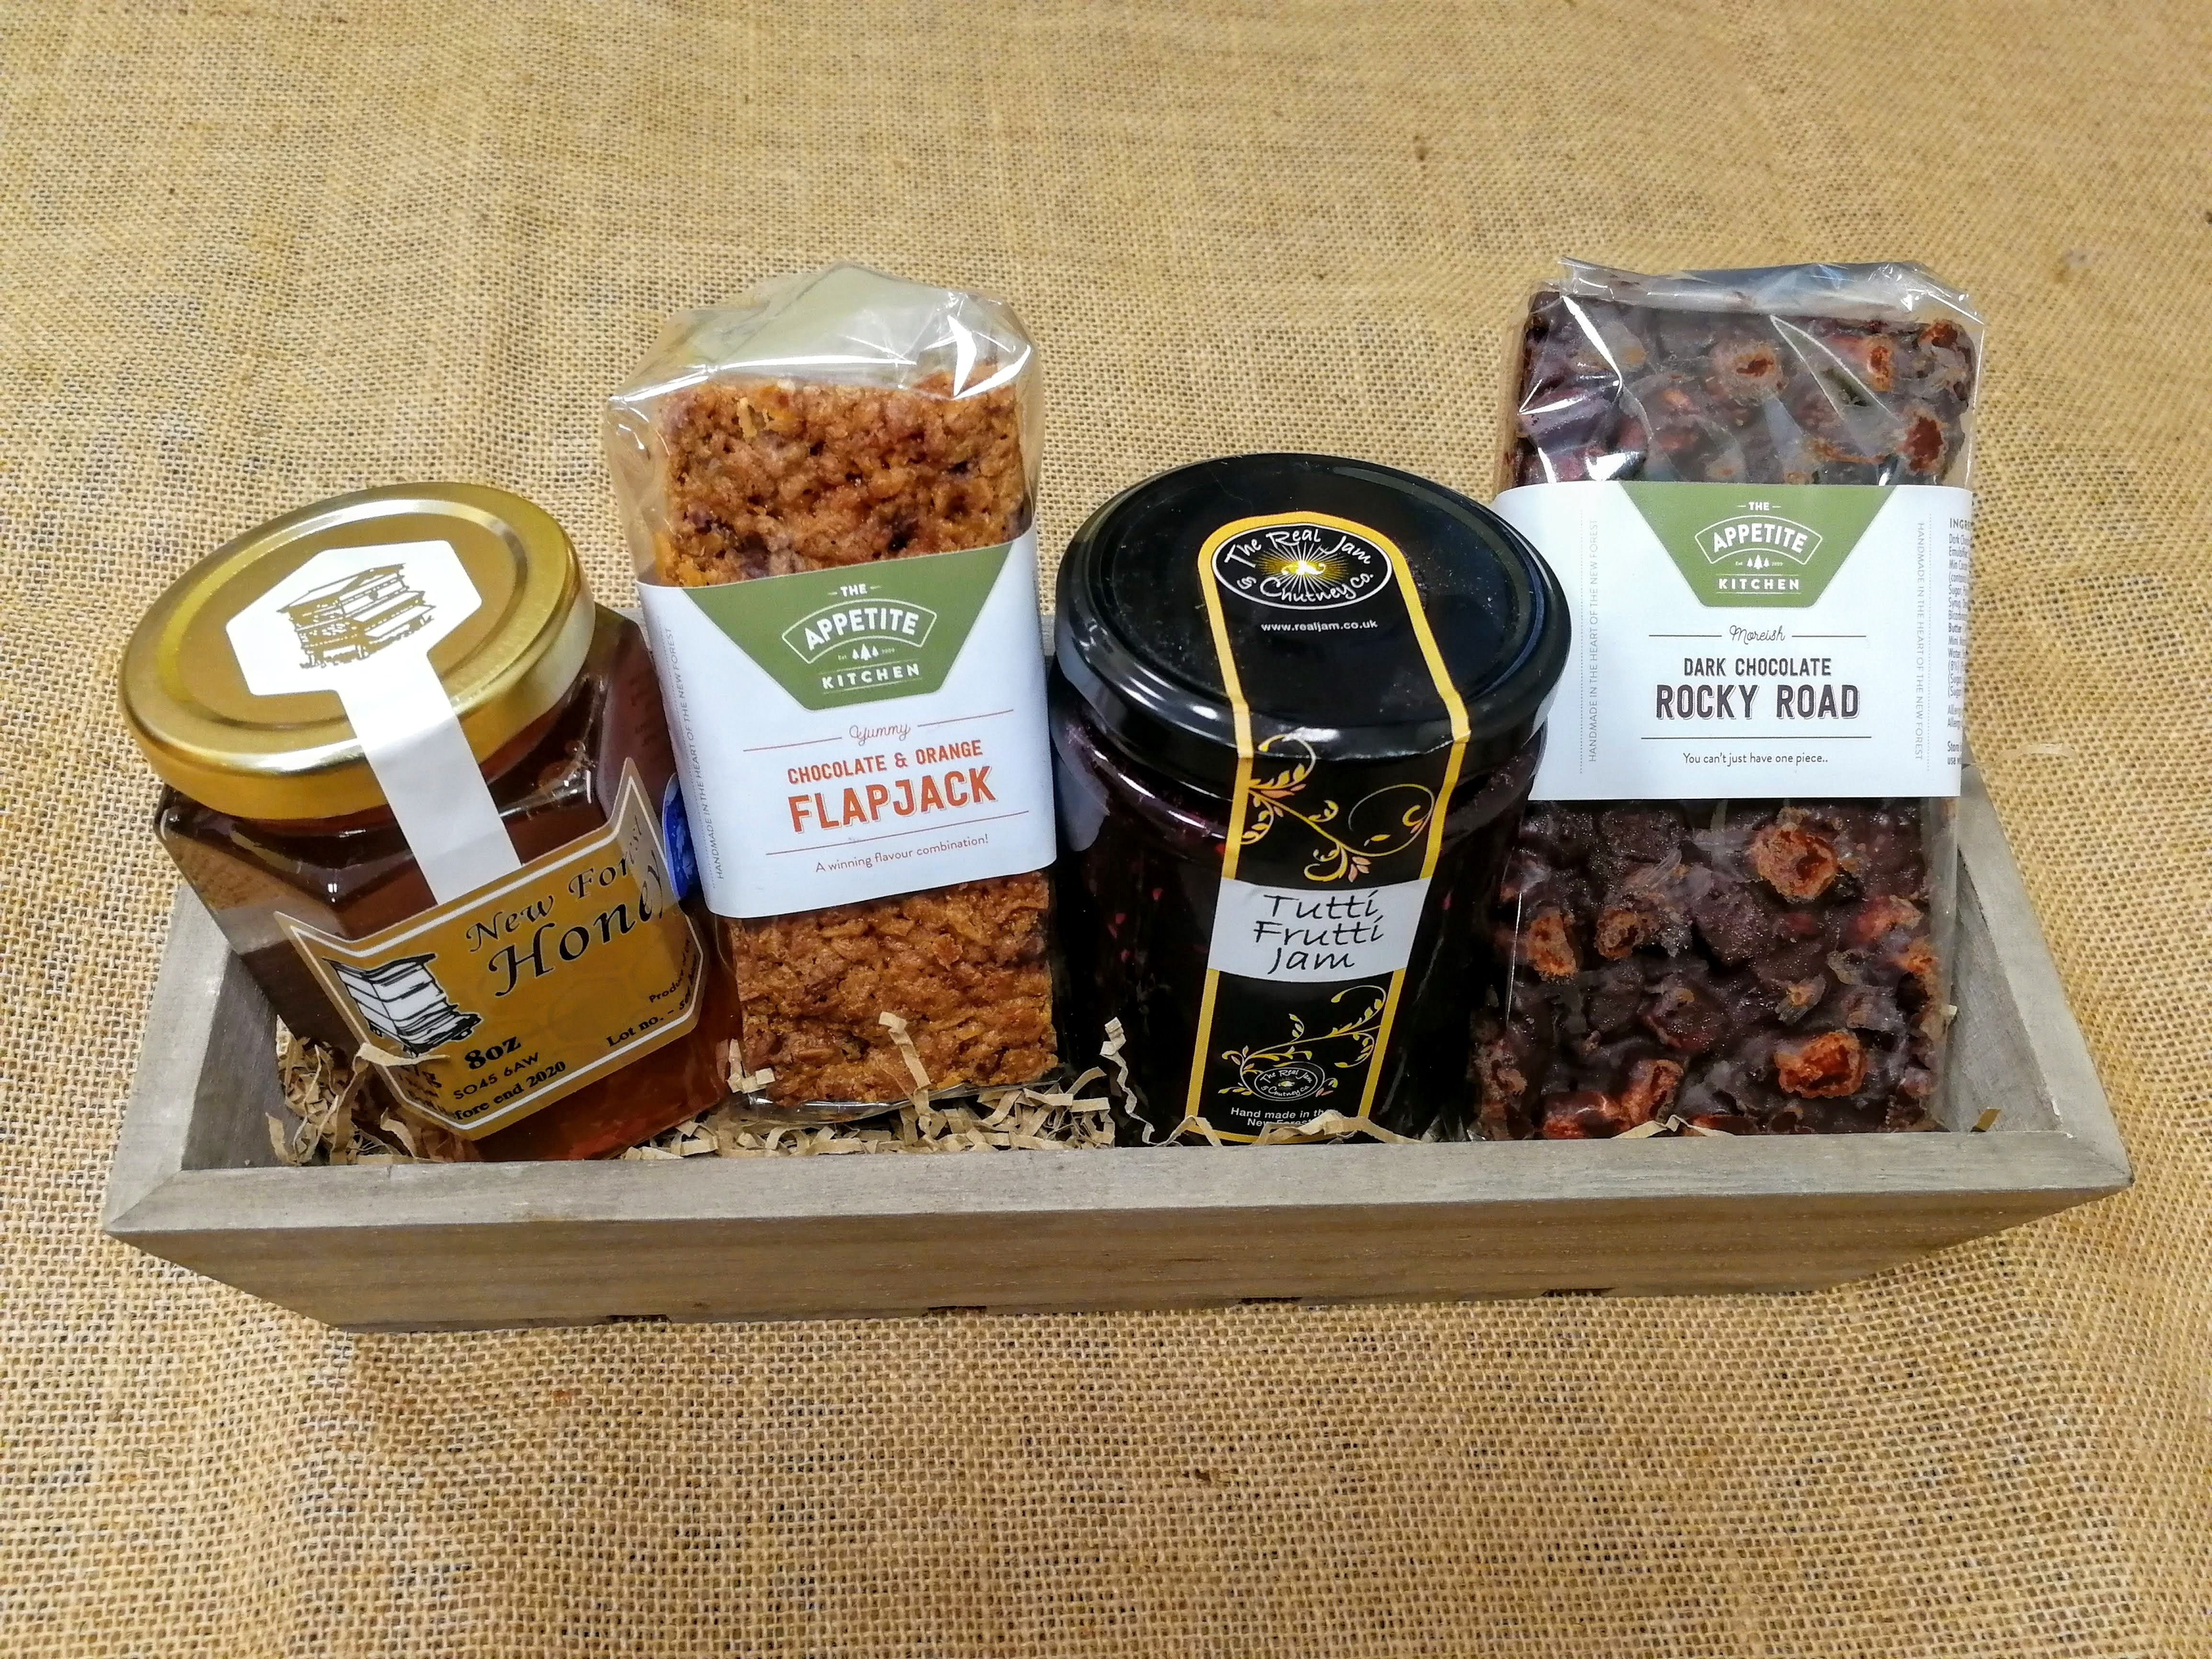 Sweet Treats Fathers Day Hamper #Gifthamperideas #Fathersday2018 #Foodie #Newforestproduce